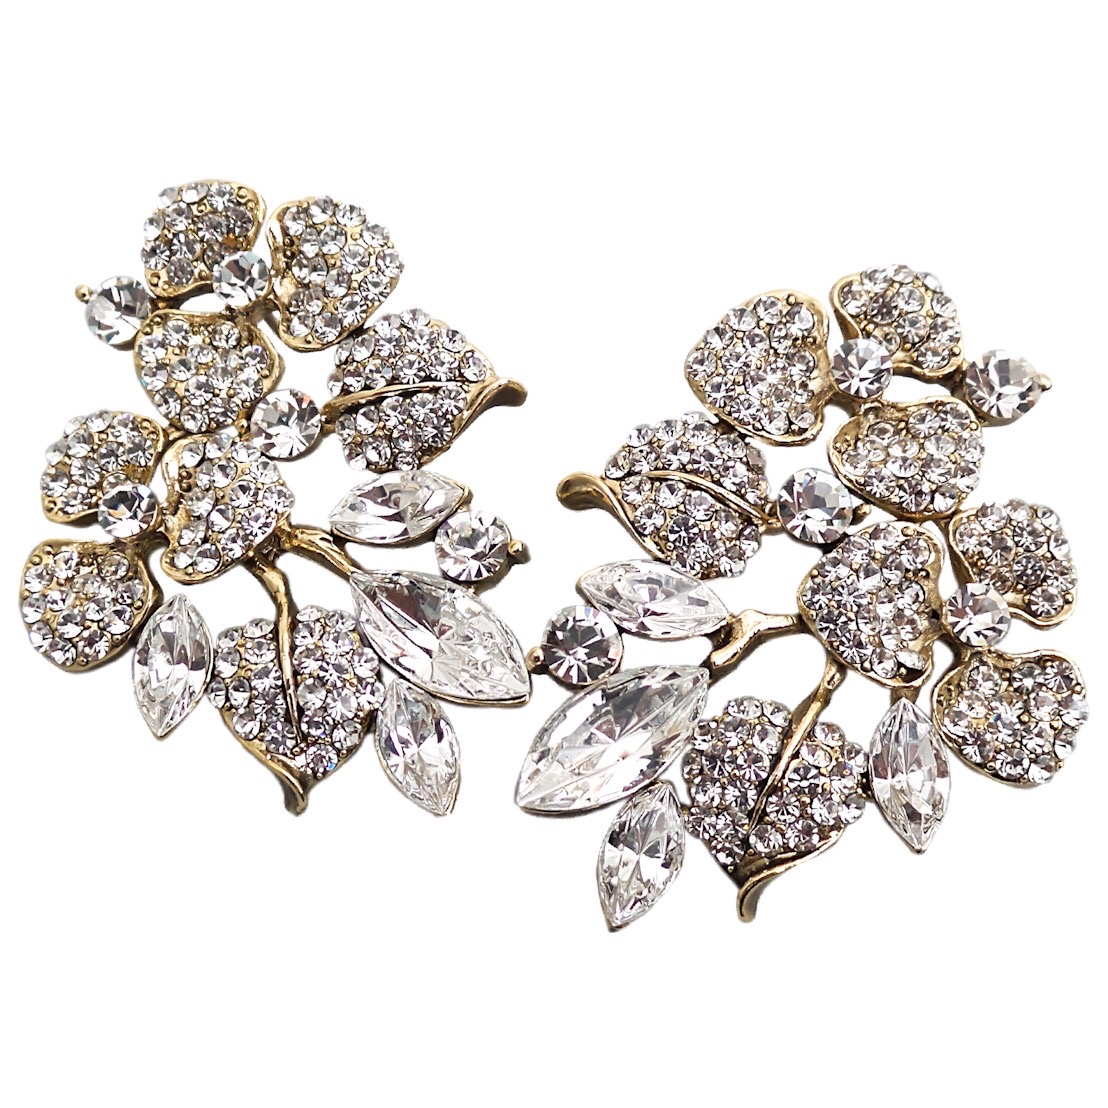 Earrings - DESERT ROSE1/CG